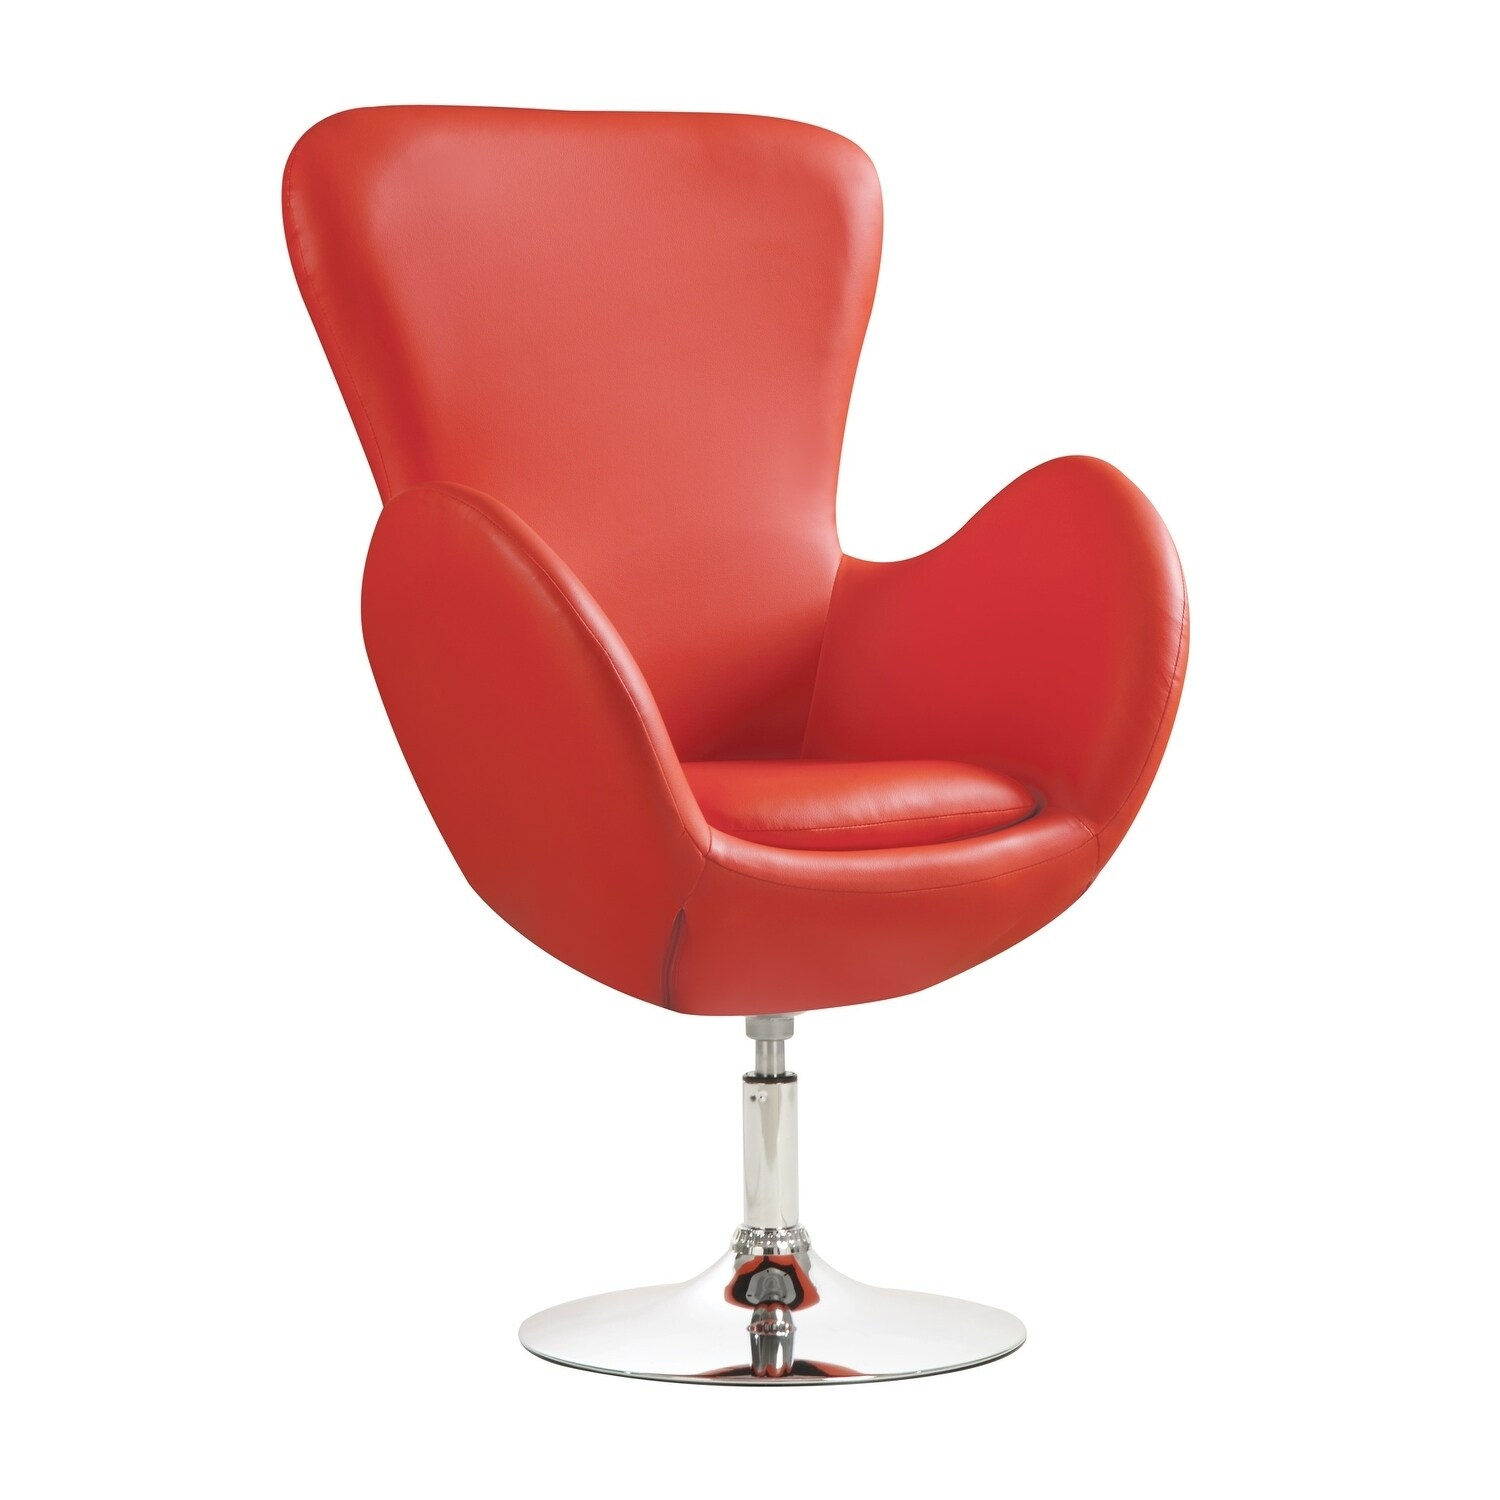 Terrific Hadzi Red High Back Curved Arm Swivel Accent Chair Ibusinesslaw Wood Chair Design Ideas Ibusinesslaworg